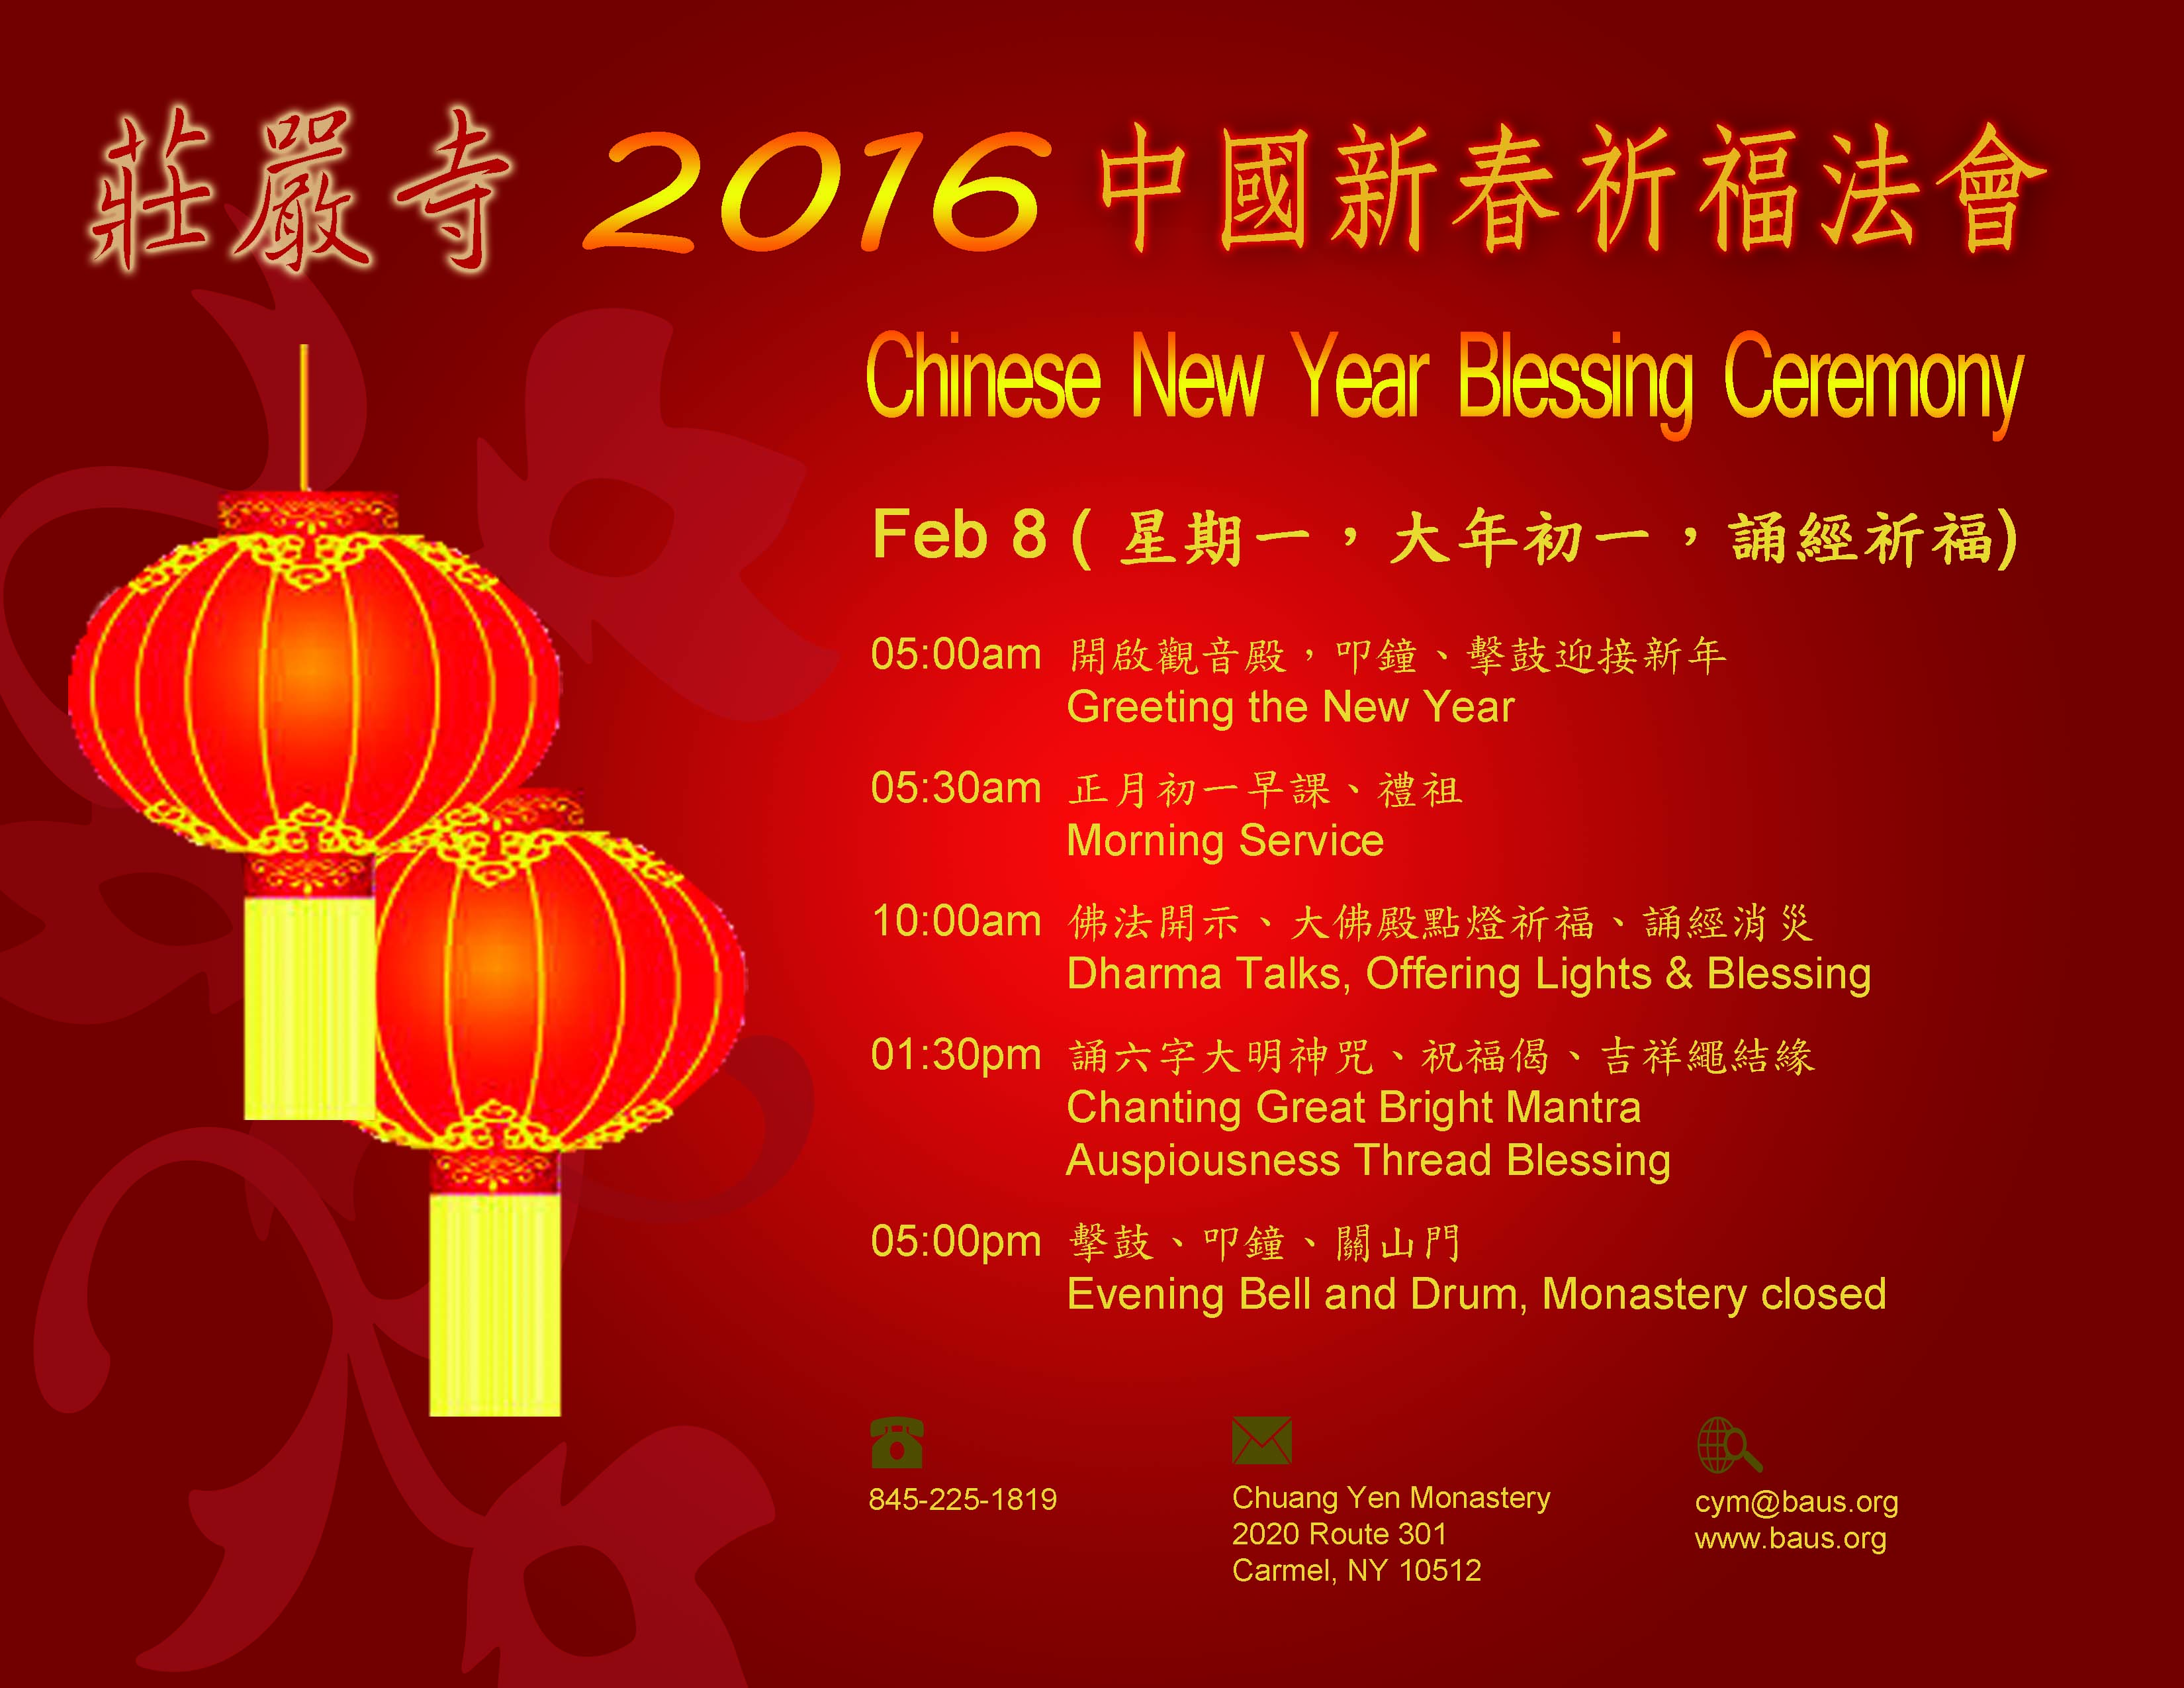 chinese new year blessing ceremony cym 282016